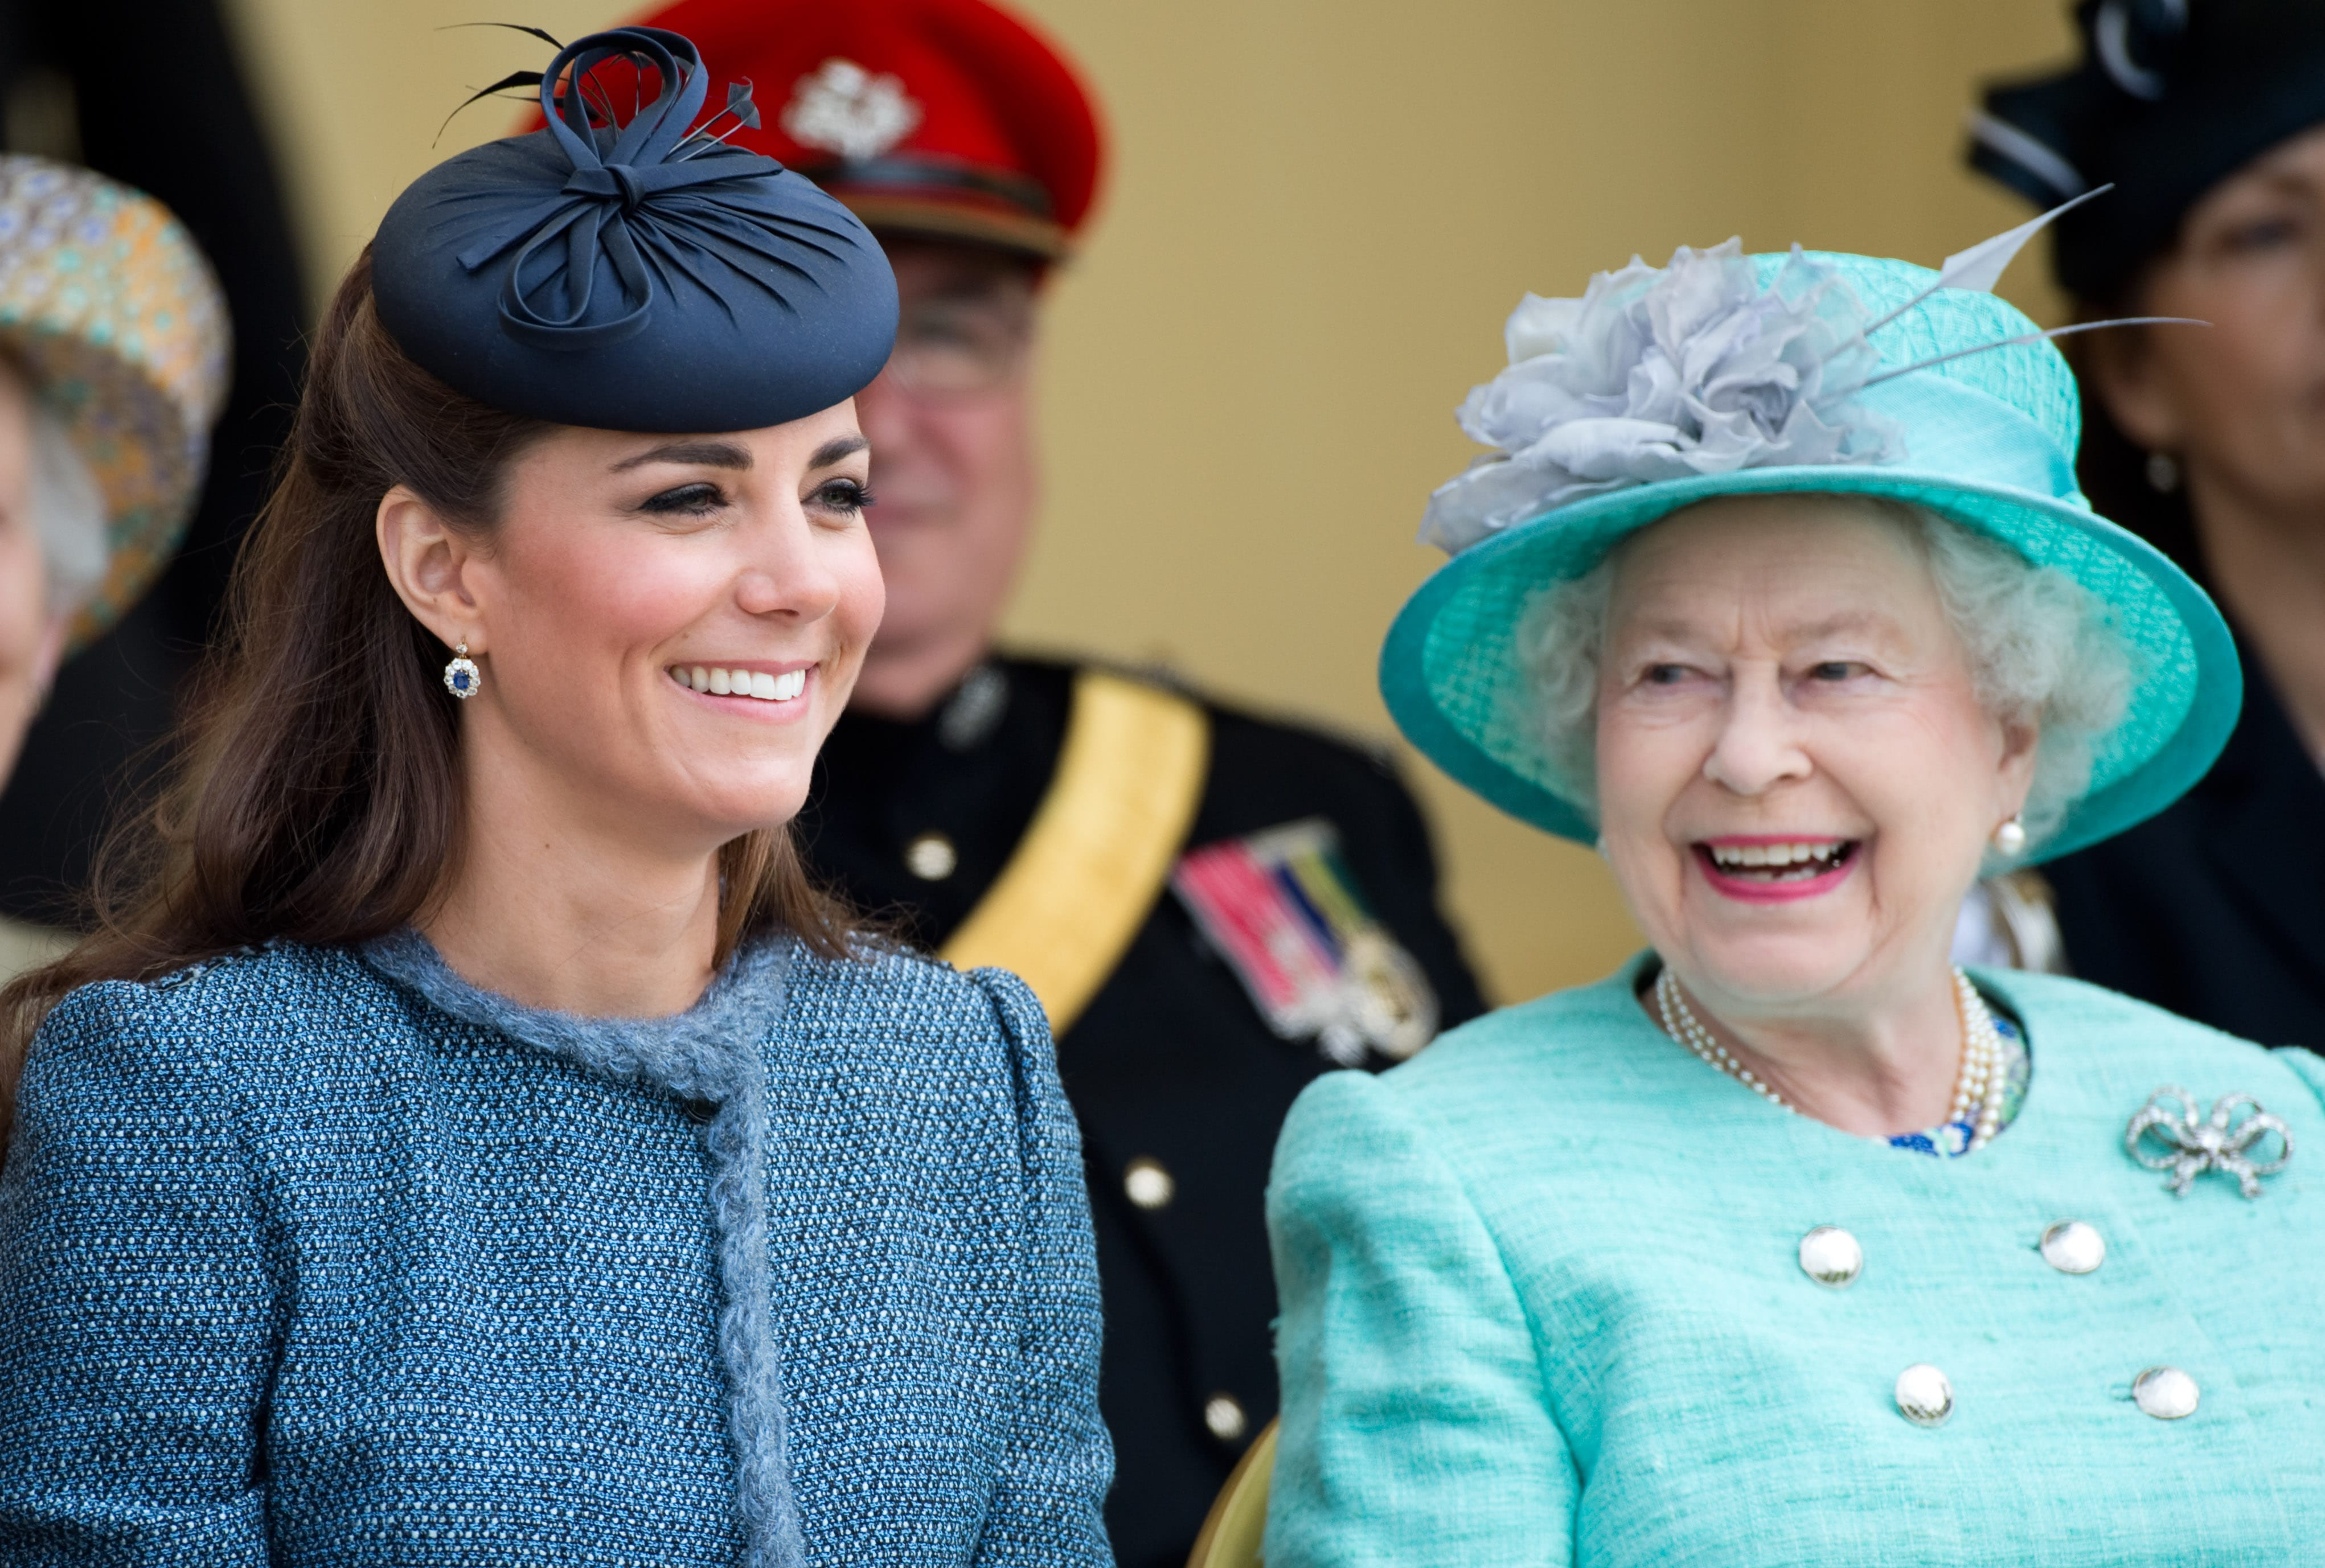 Kate Middleton has a direct phone call to call Queen Elizabeth to check in - New York Latest News